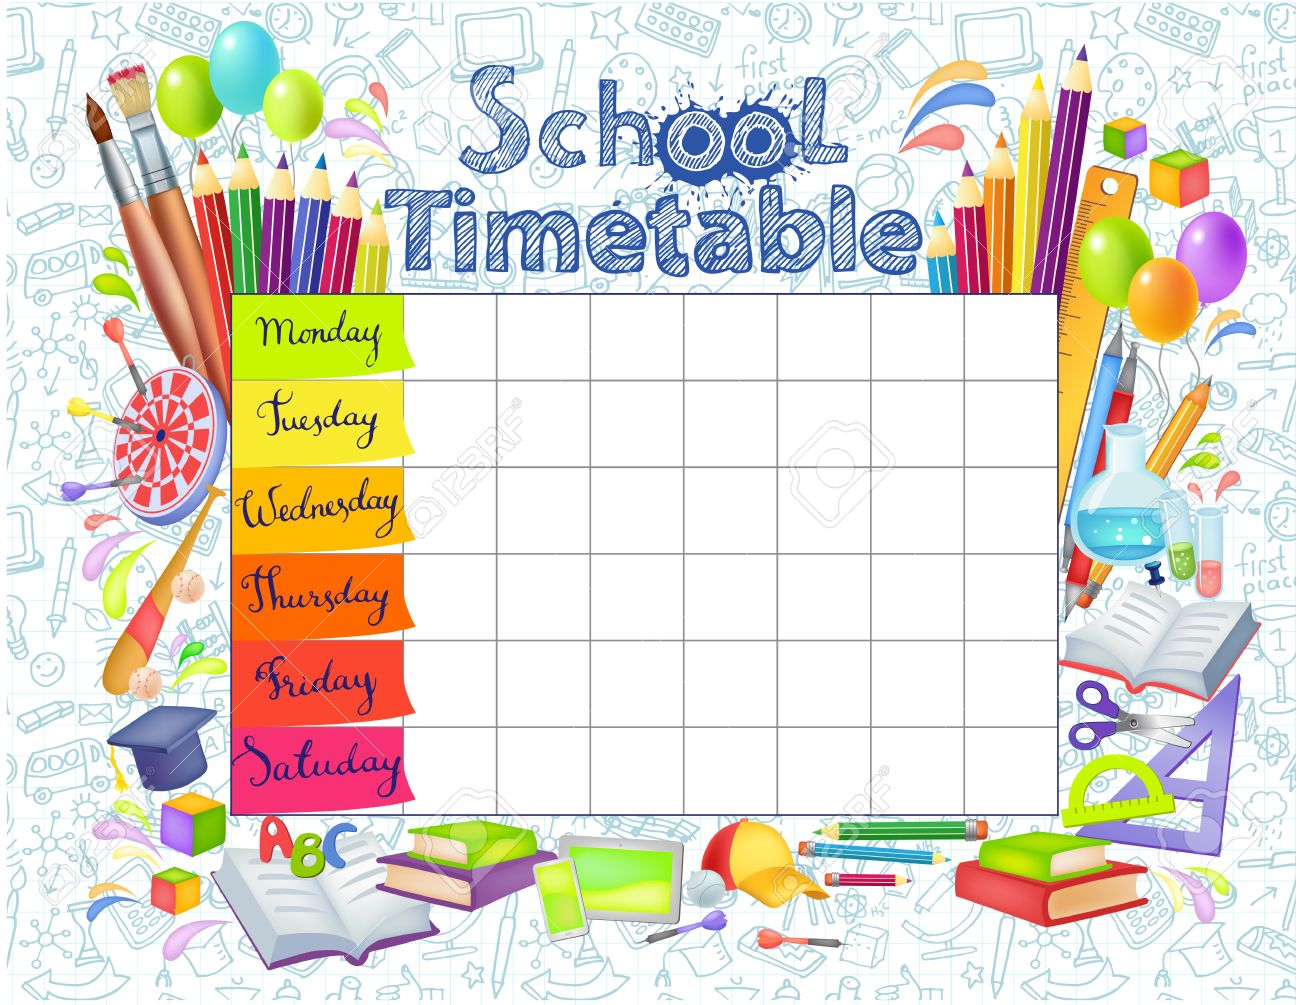 Template School Timetable For Students Or Pupils With Days – Timetable Template School